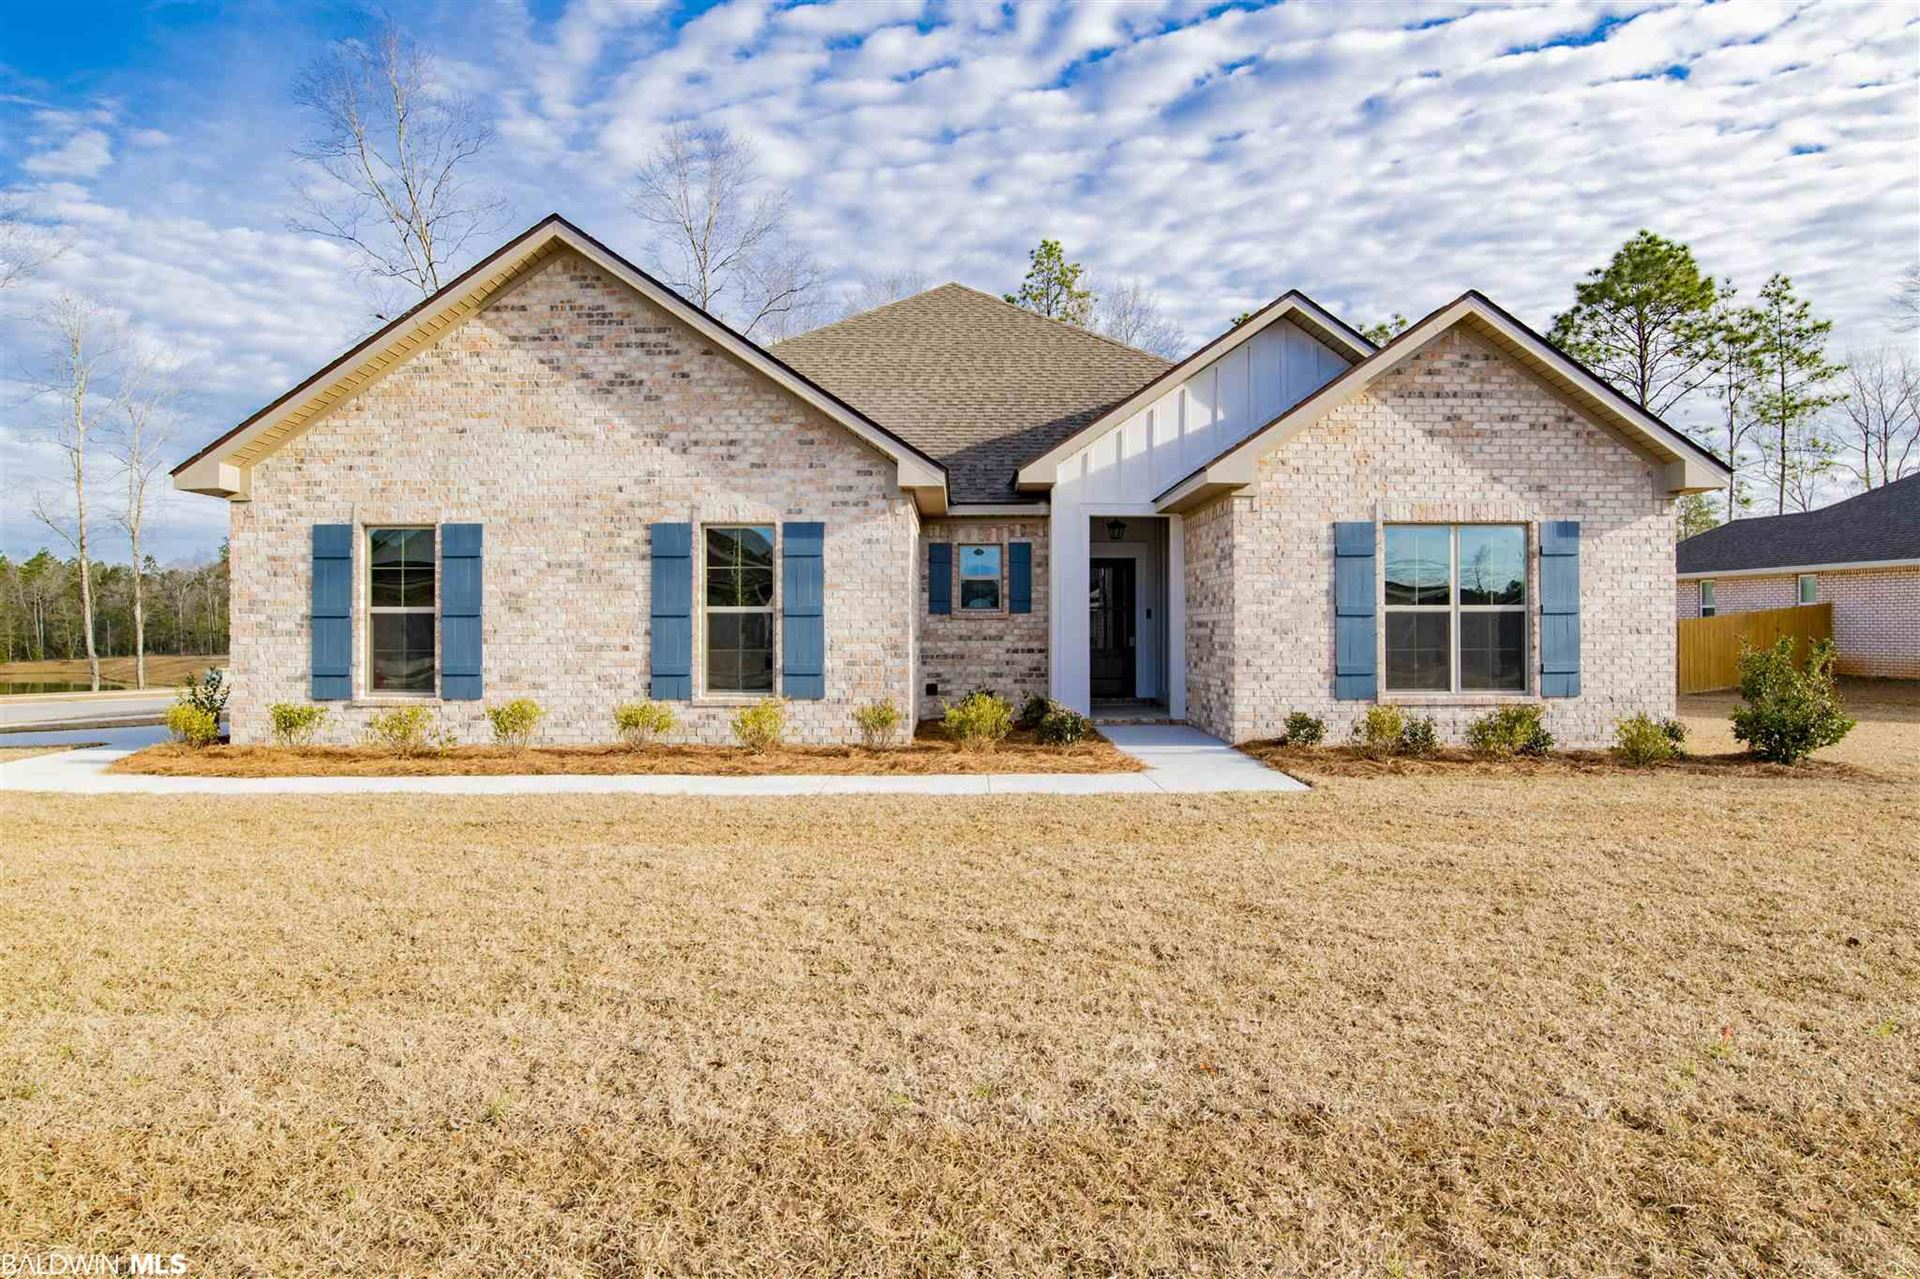 Property Image Of 31662 Emerson Drive In Spanish Fort, Al